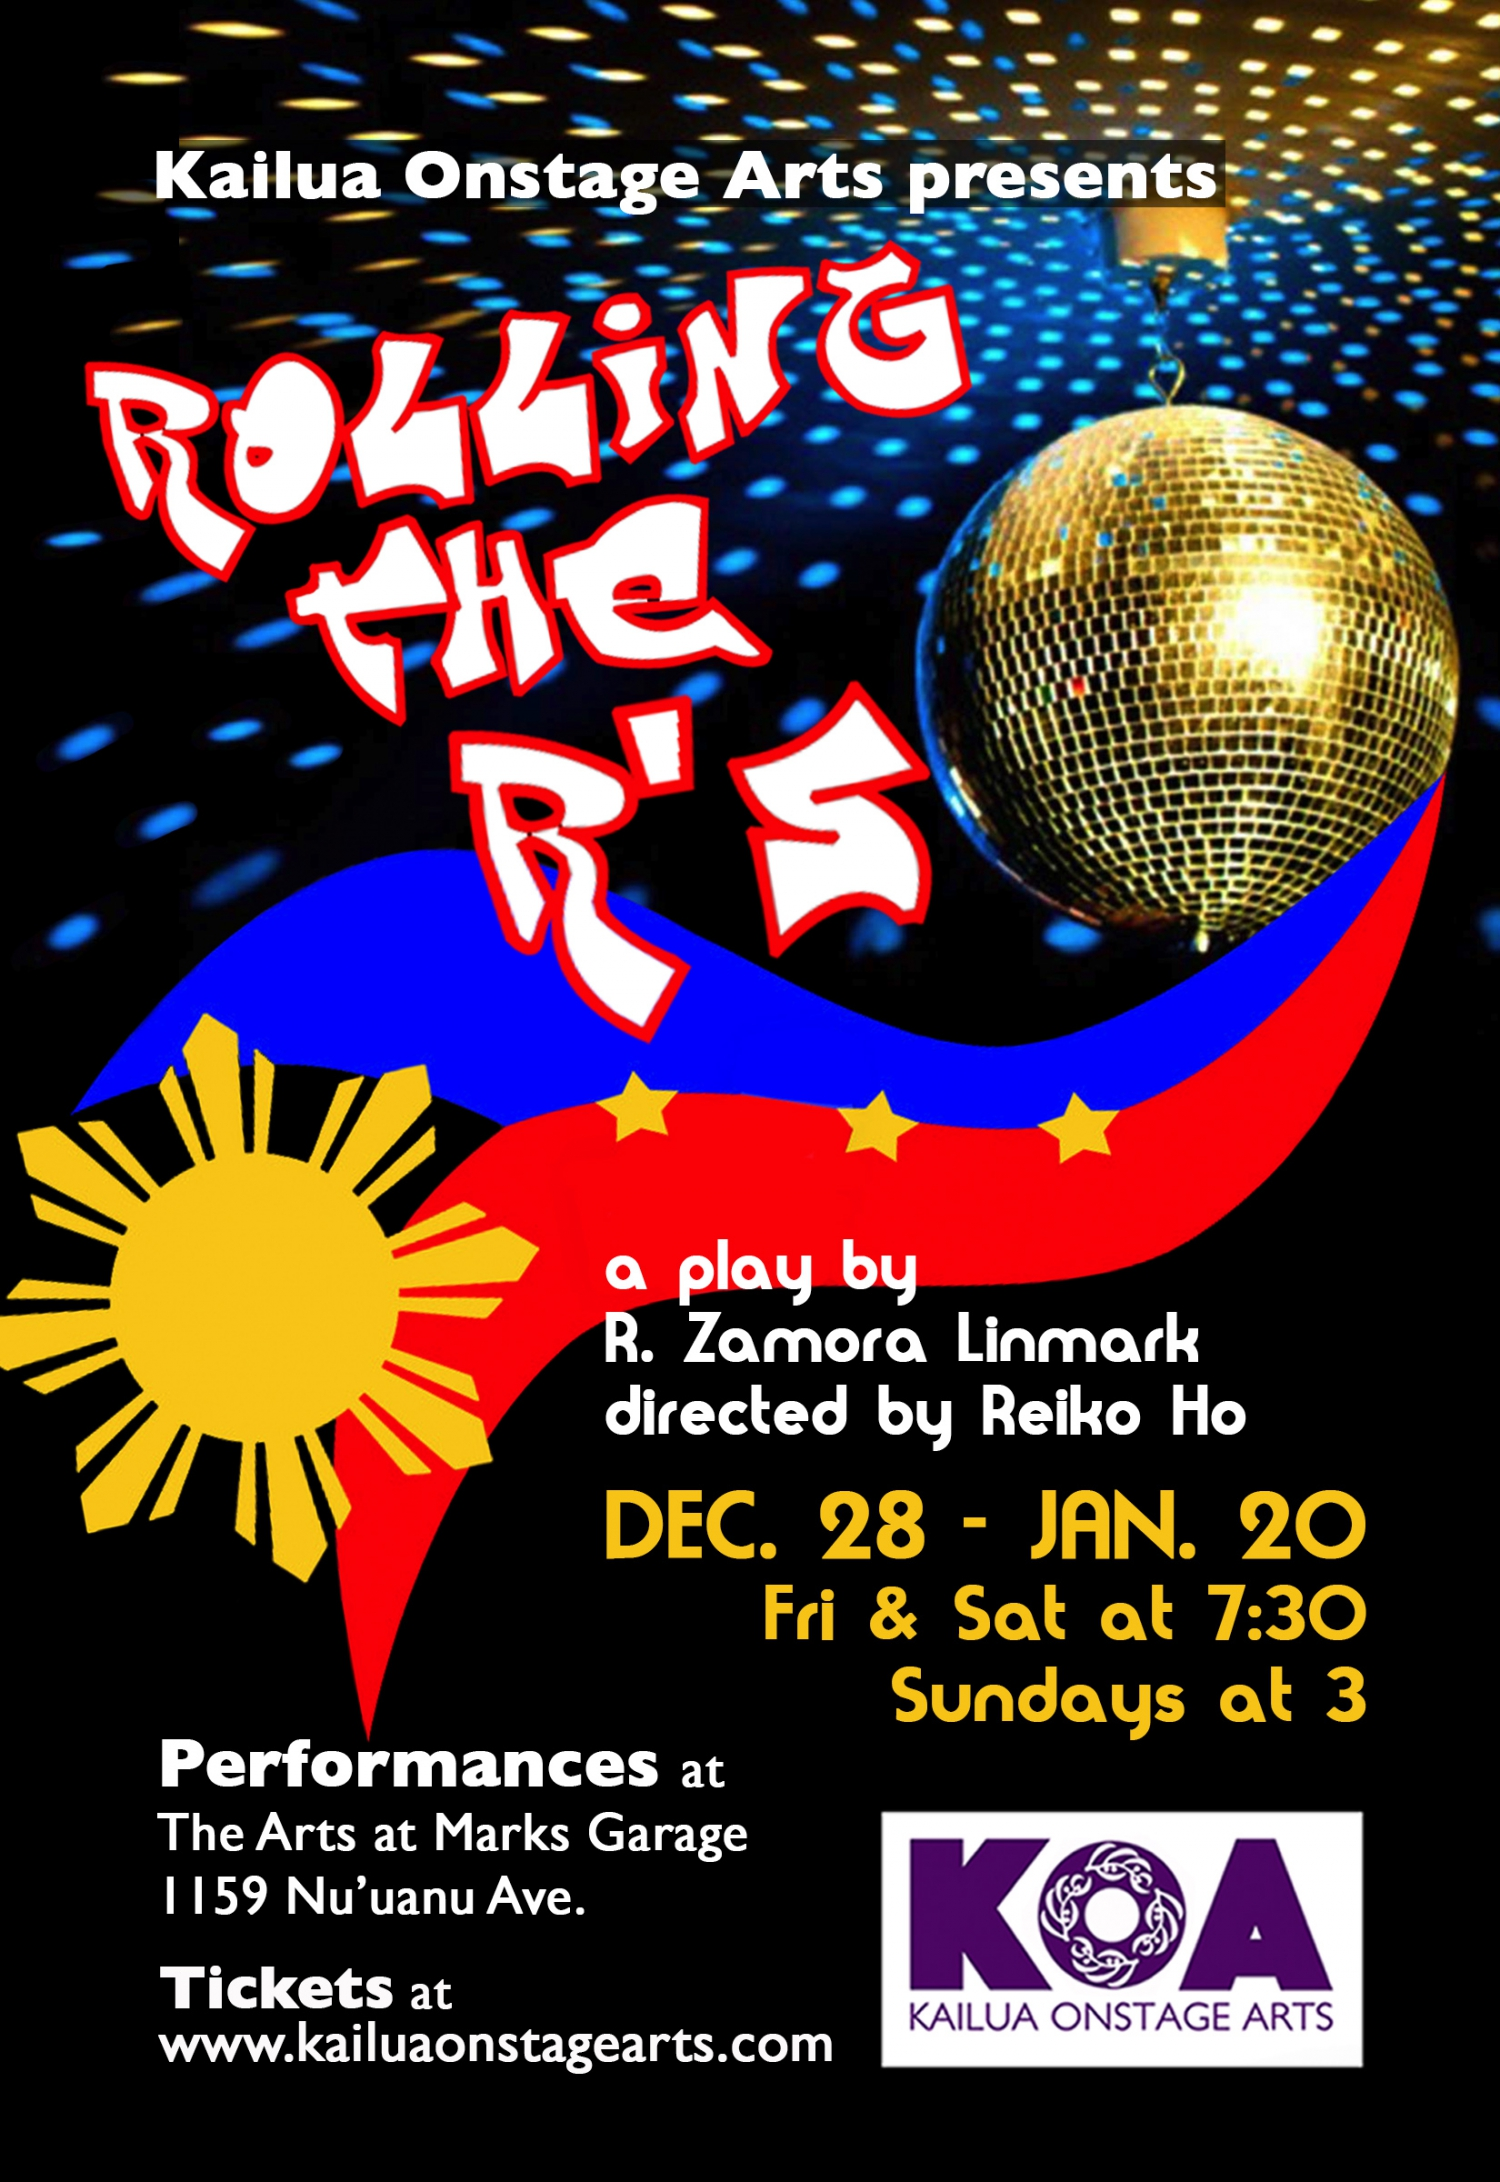 ROLLING THE R'S, a play by R. Zamora Linmark, directed by Reiko Ho